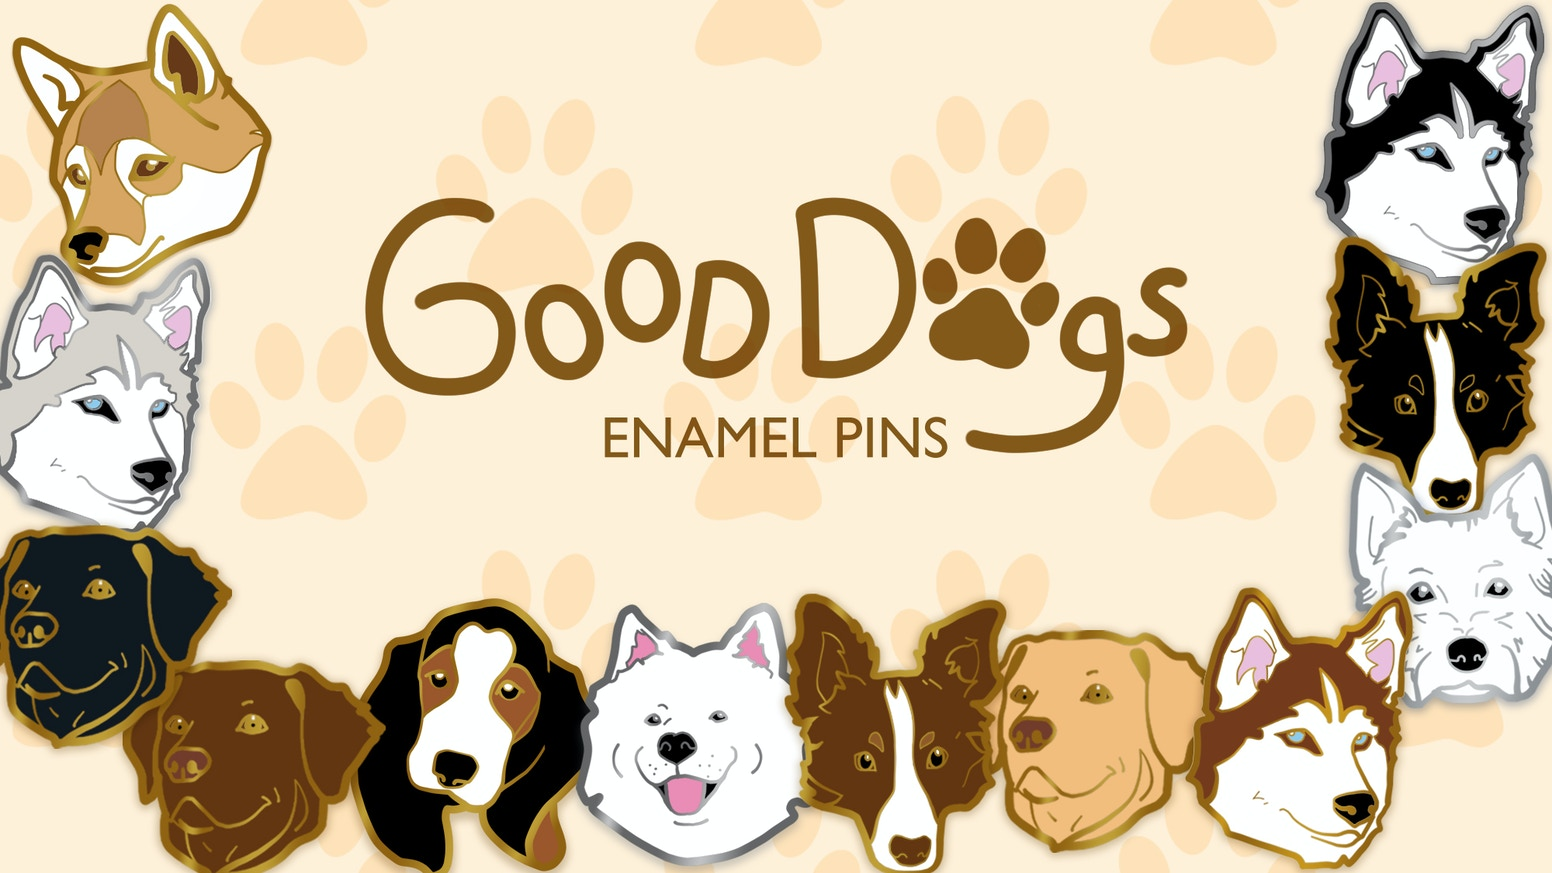 The sequel to the Good Dogs Enamel Pin Collection Kickstarter - here is Good Dogs 2 with 7 new breeds and 12 new designs!